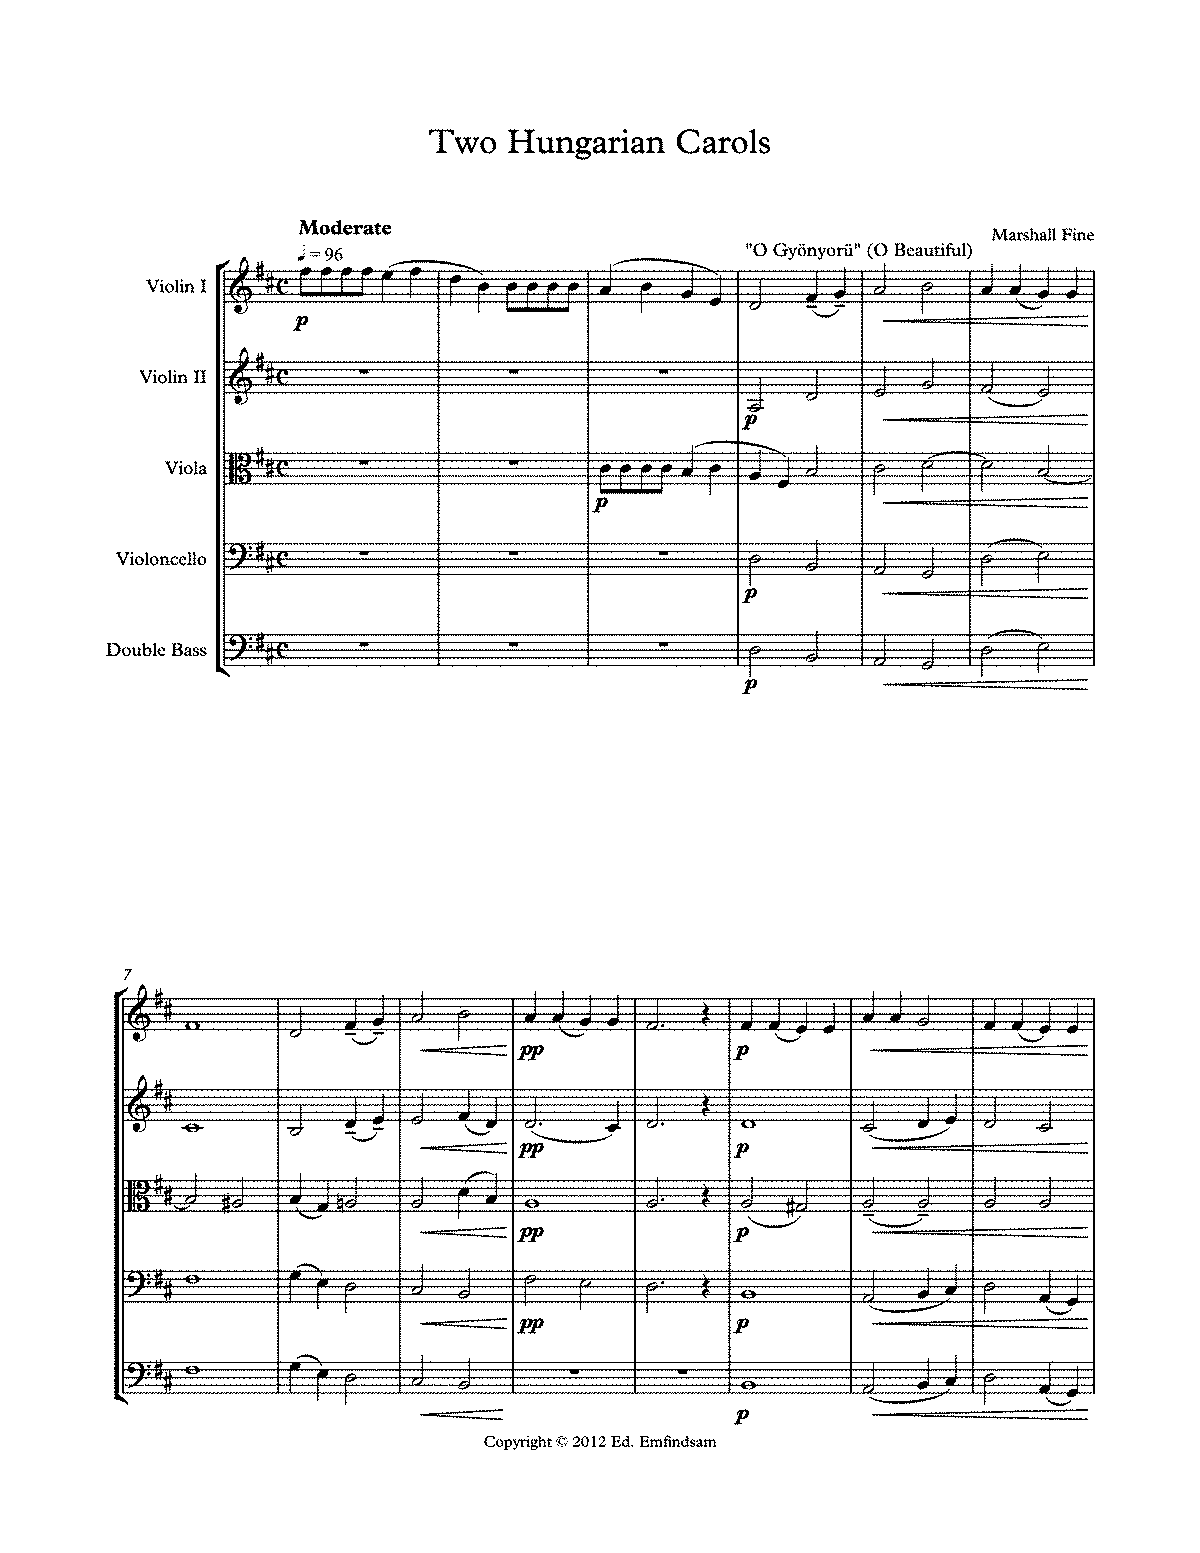 PMLP550066-Two Hungarian Carols - score and parts.pdf